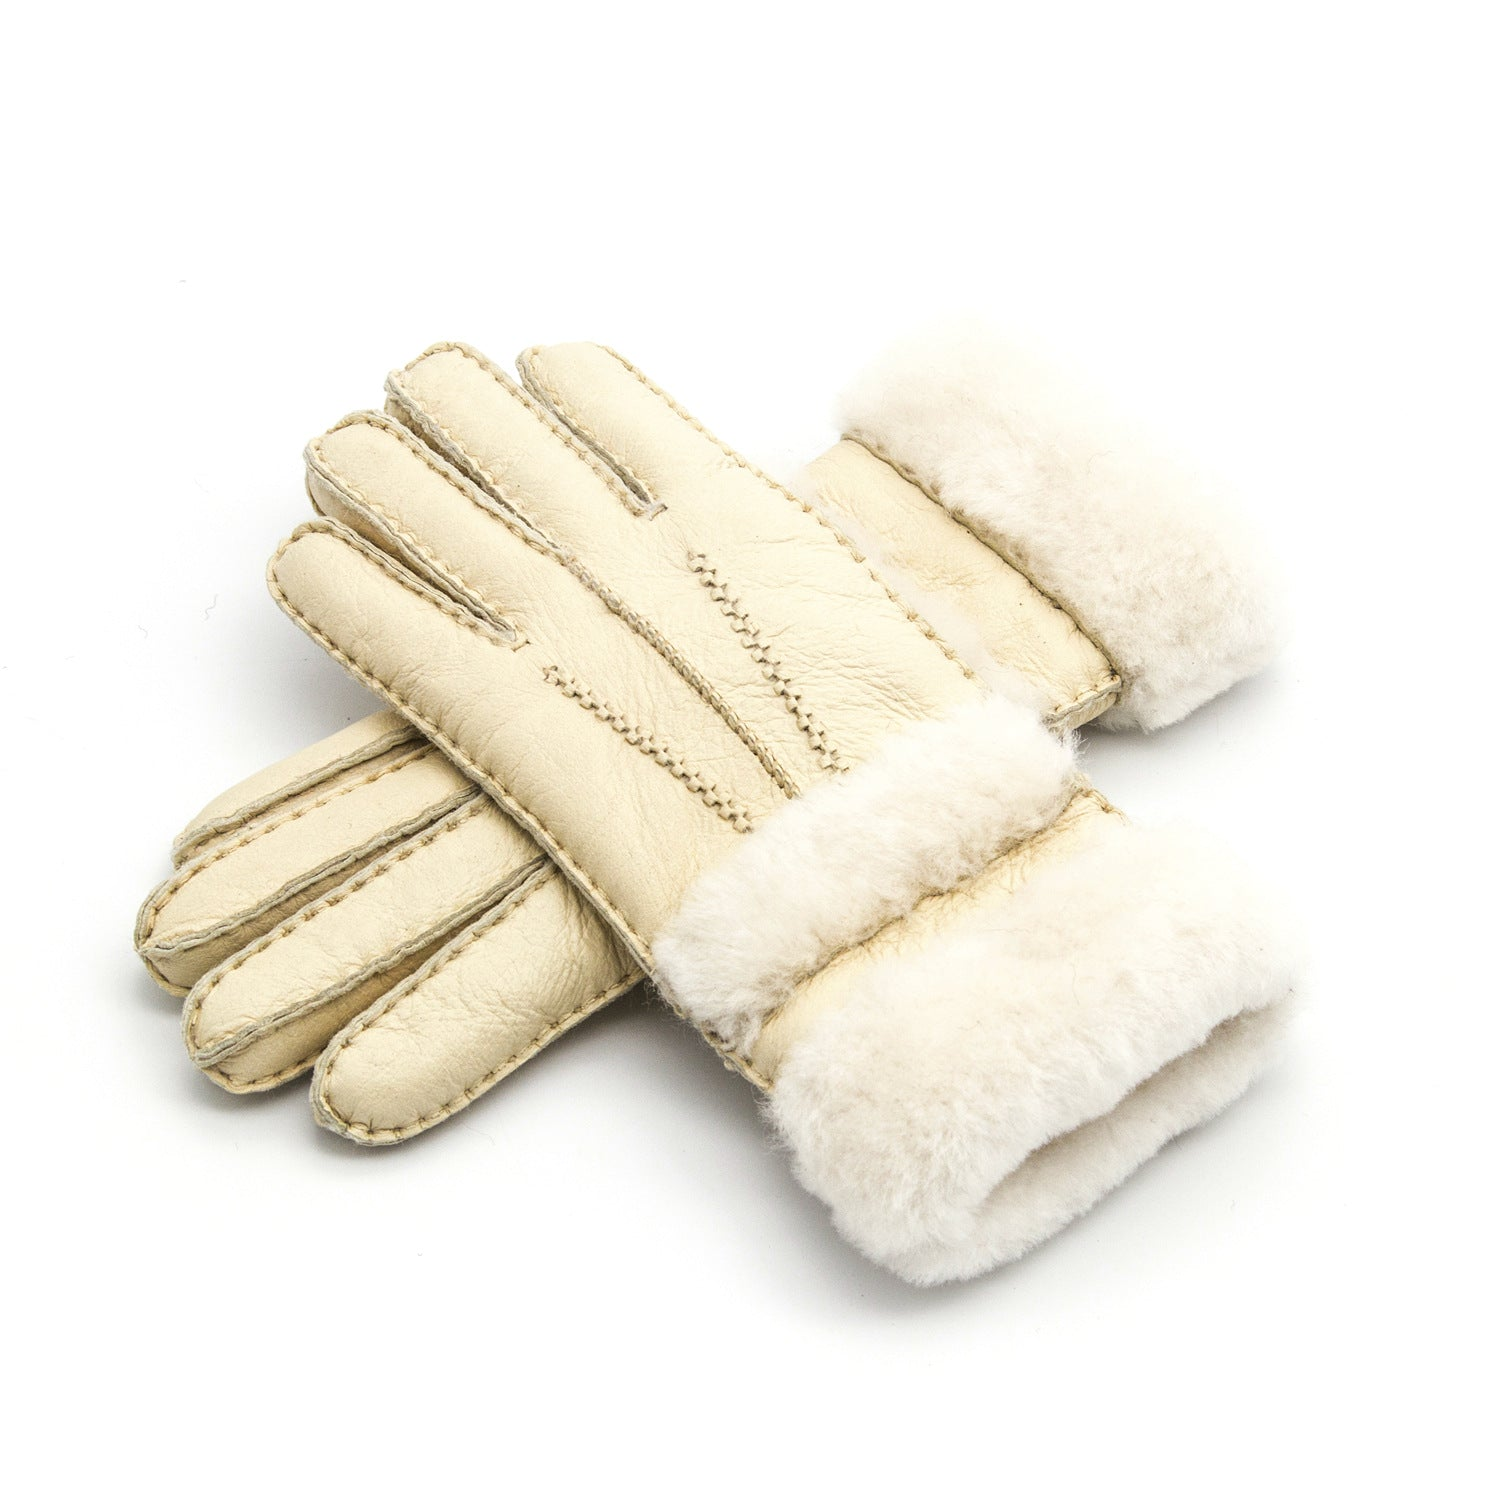 Costbuys  Gloves Women'S Mitten Winter Warm Fur Leather Thick Glove Sheepskin Casual Wool Clothing Accessories Apparel Plaid Woo